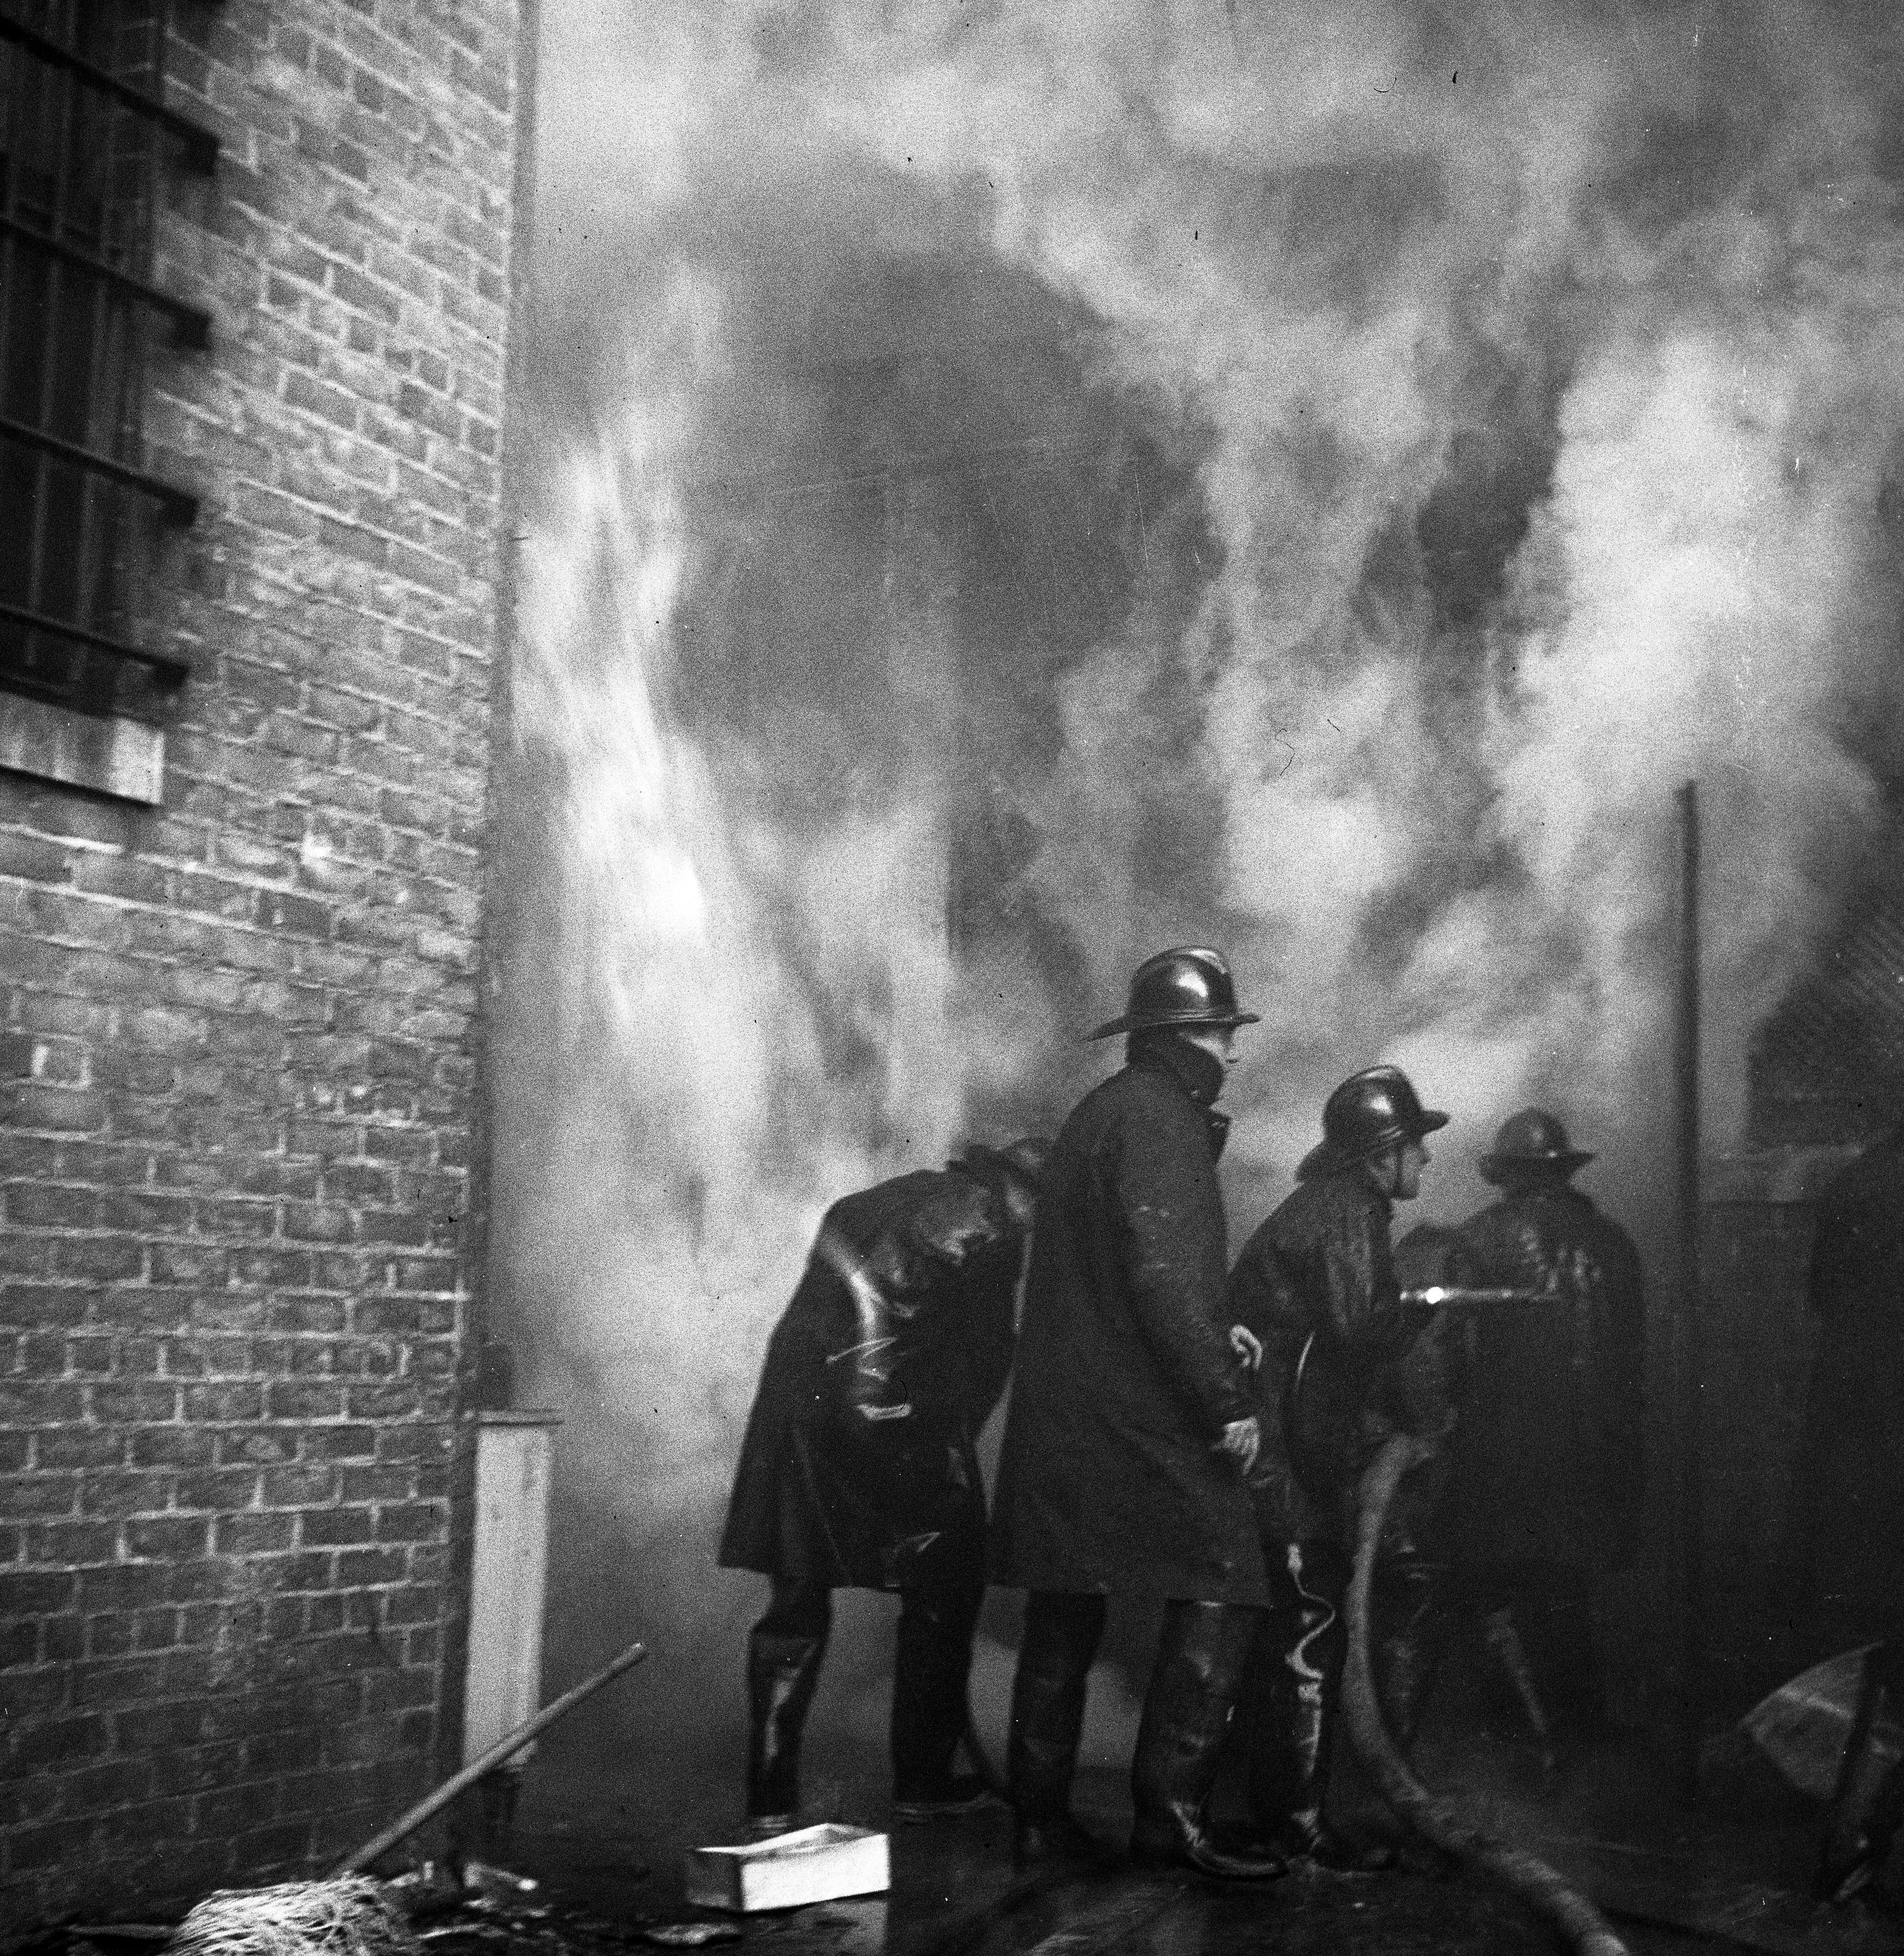 Flames Shoot Out of Rear of Wild Building During Wild & Co. Fire, December 1947 image